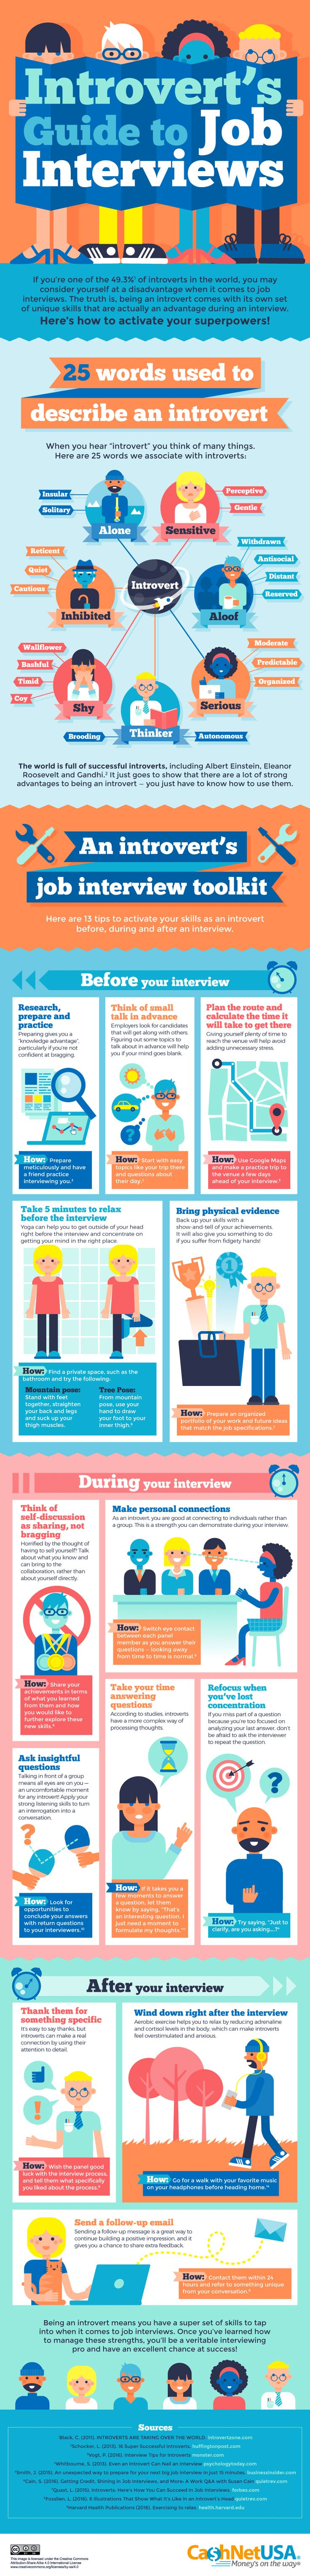 An Introvert's Guide to Job Interviews (Infographic)